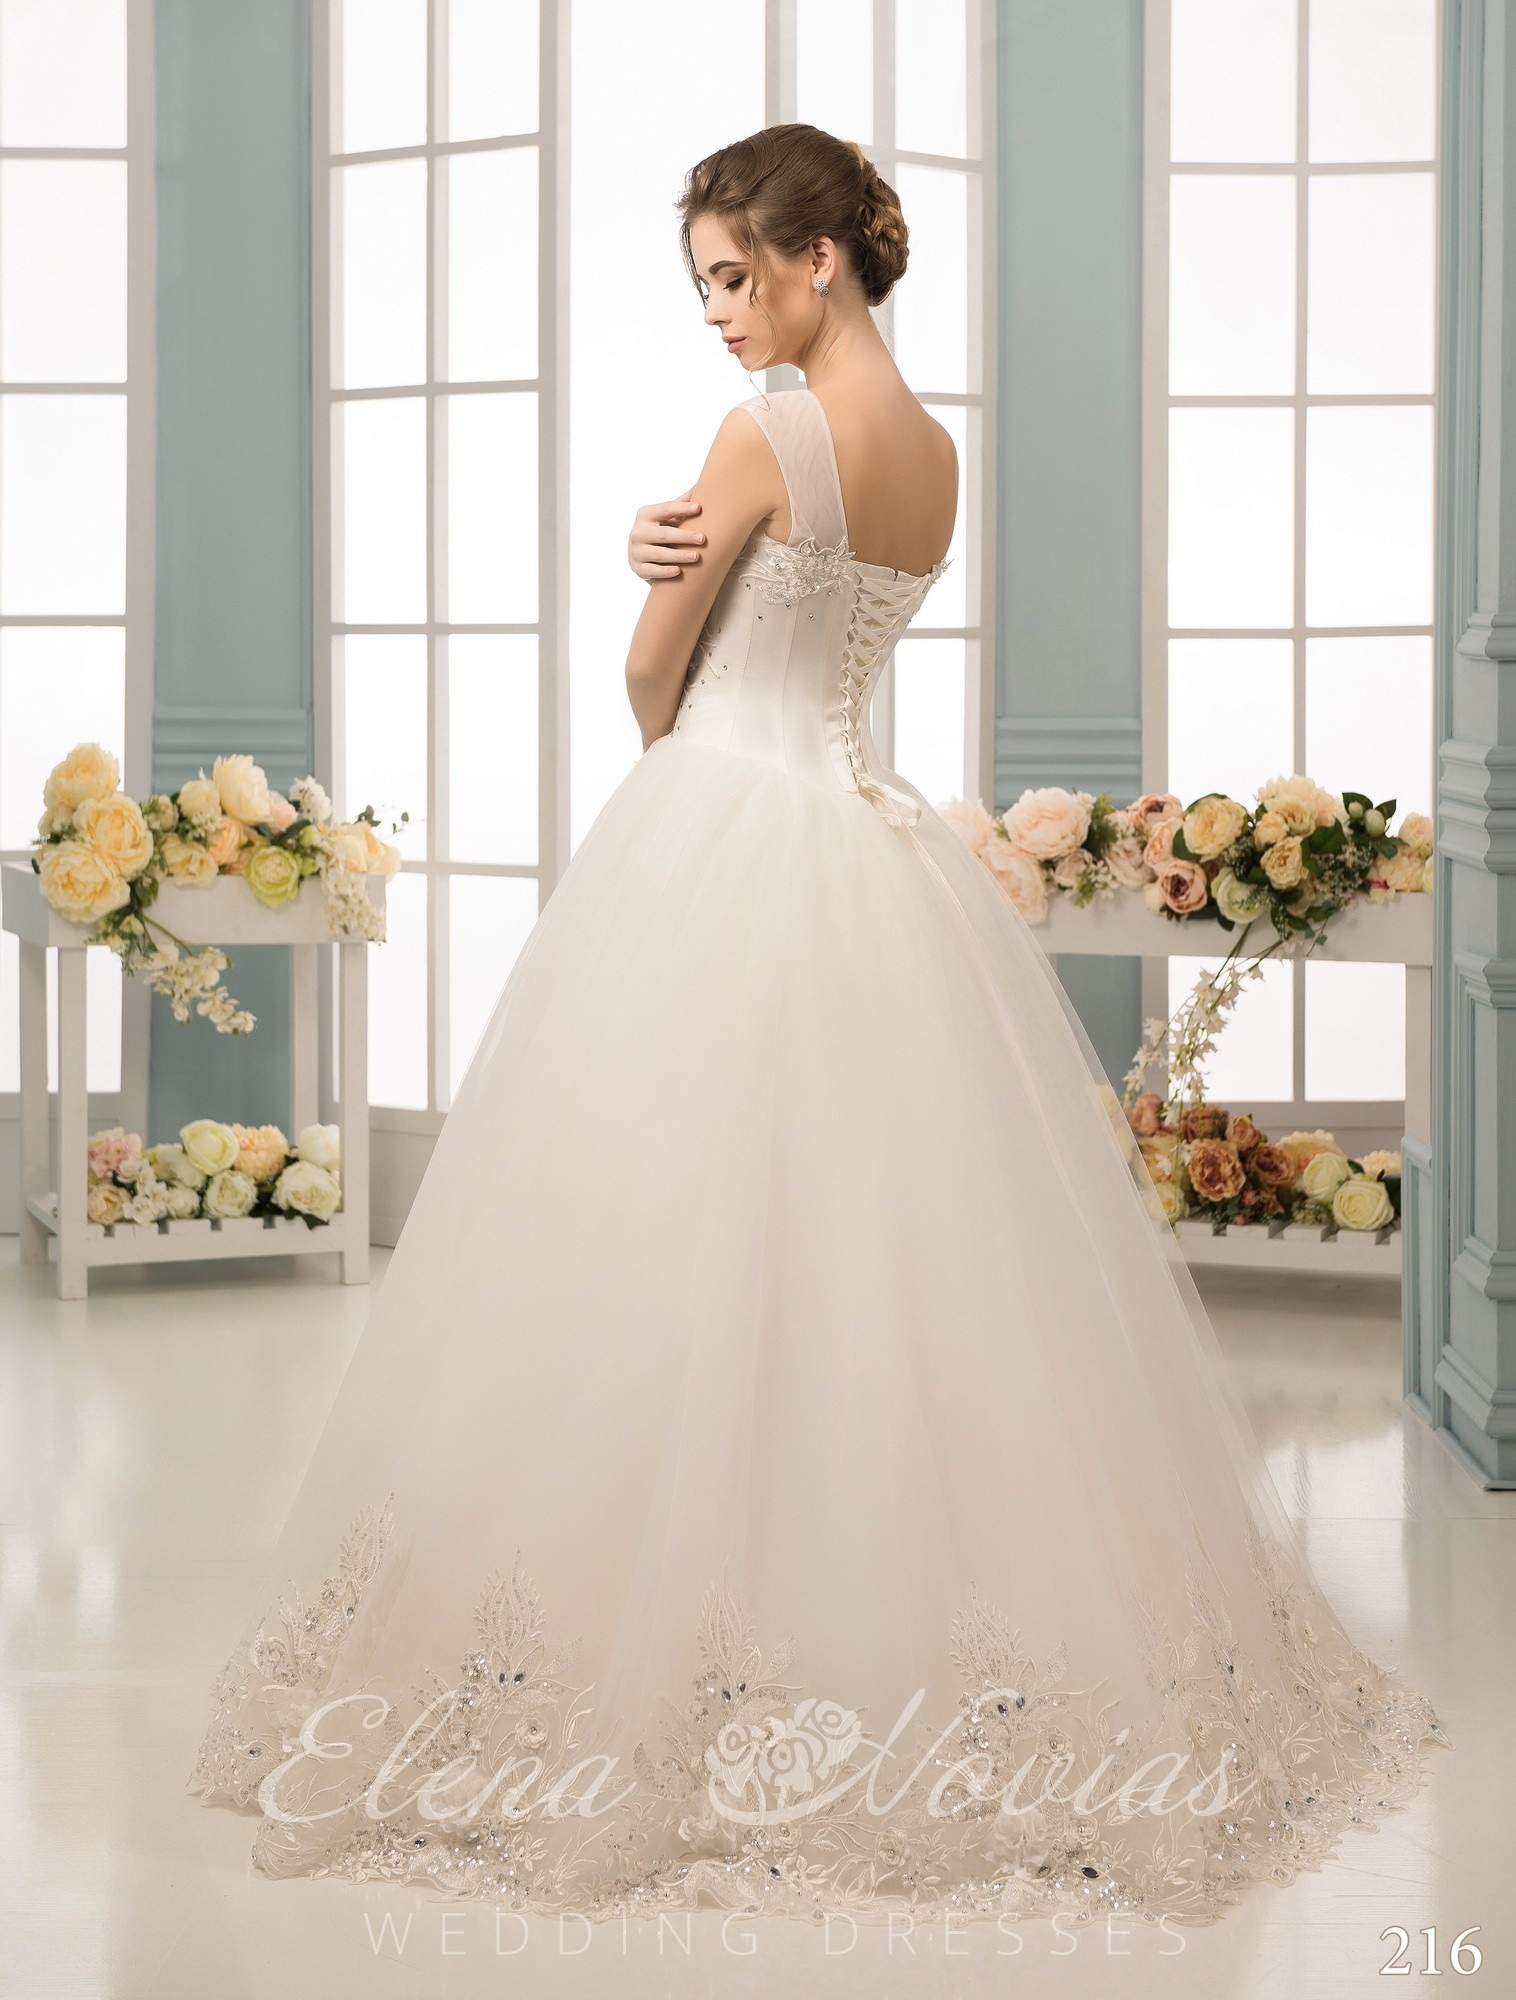 Wedding dress wholesale 216